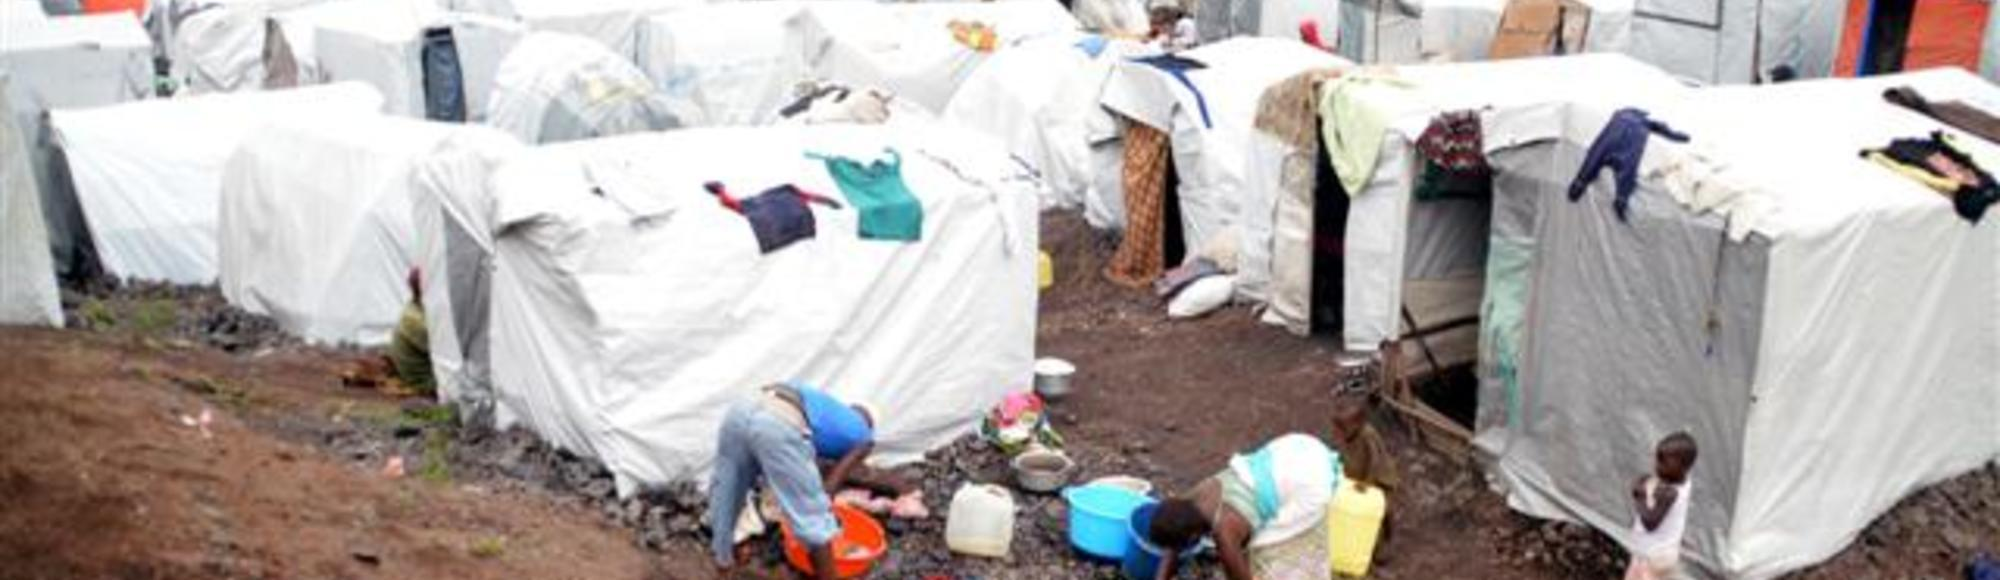 North Kivu Is In a Constant State of Emergency